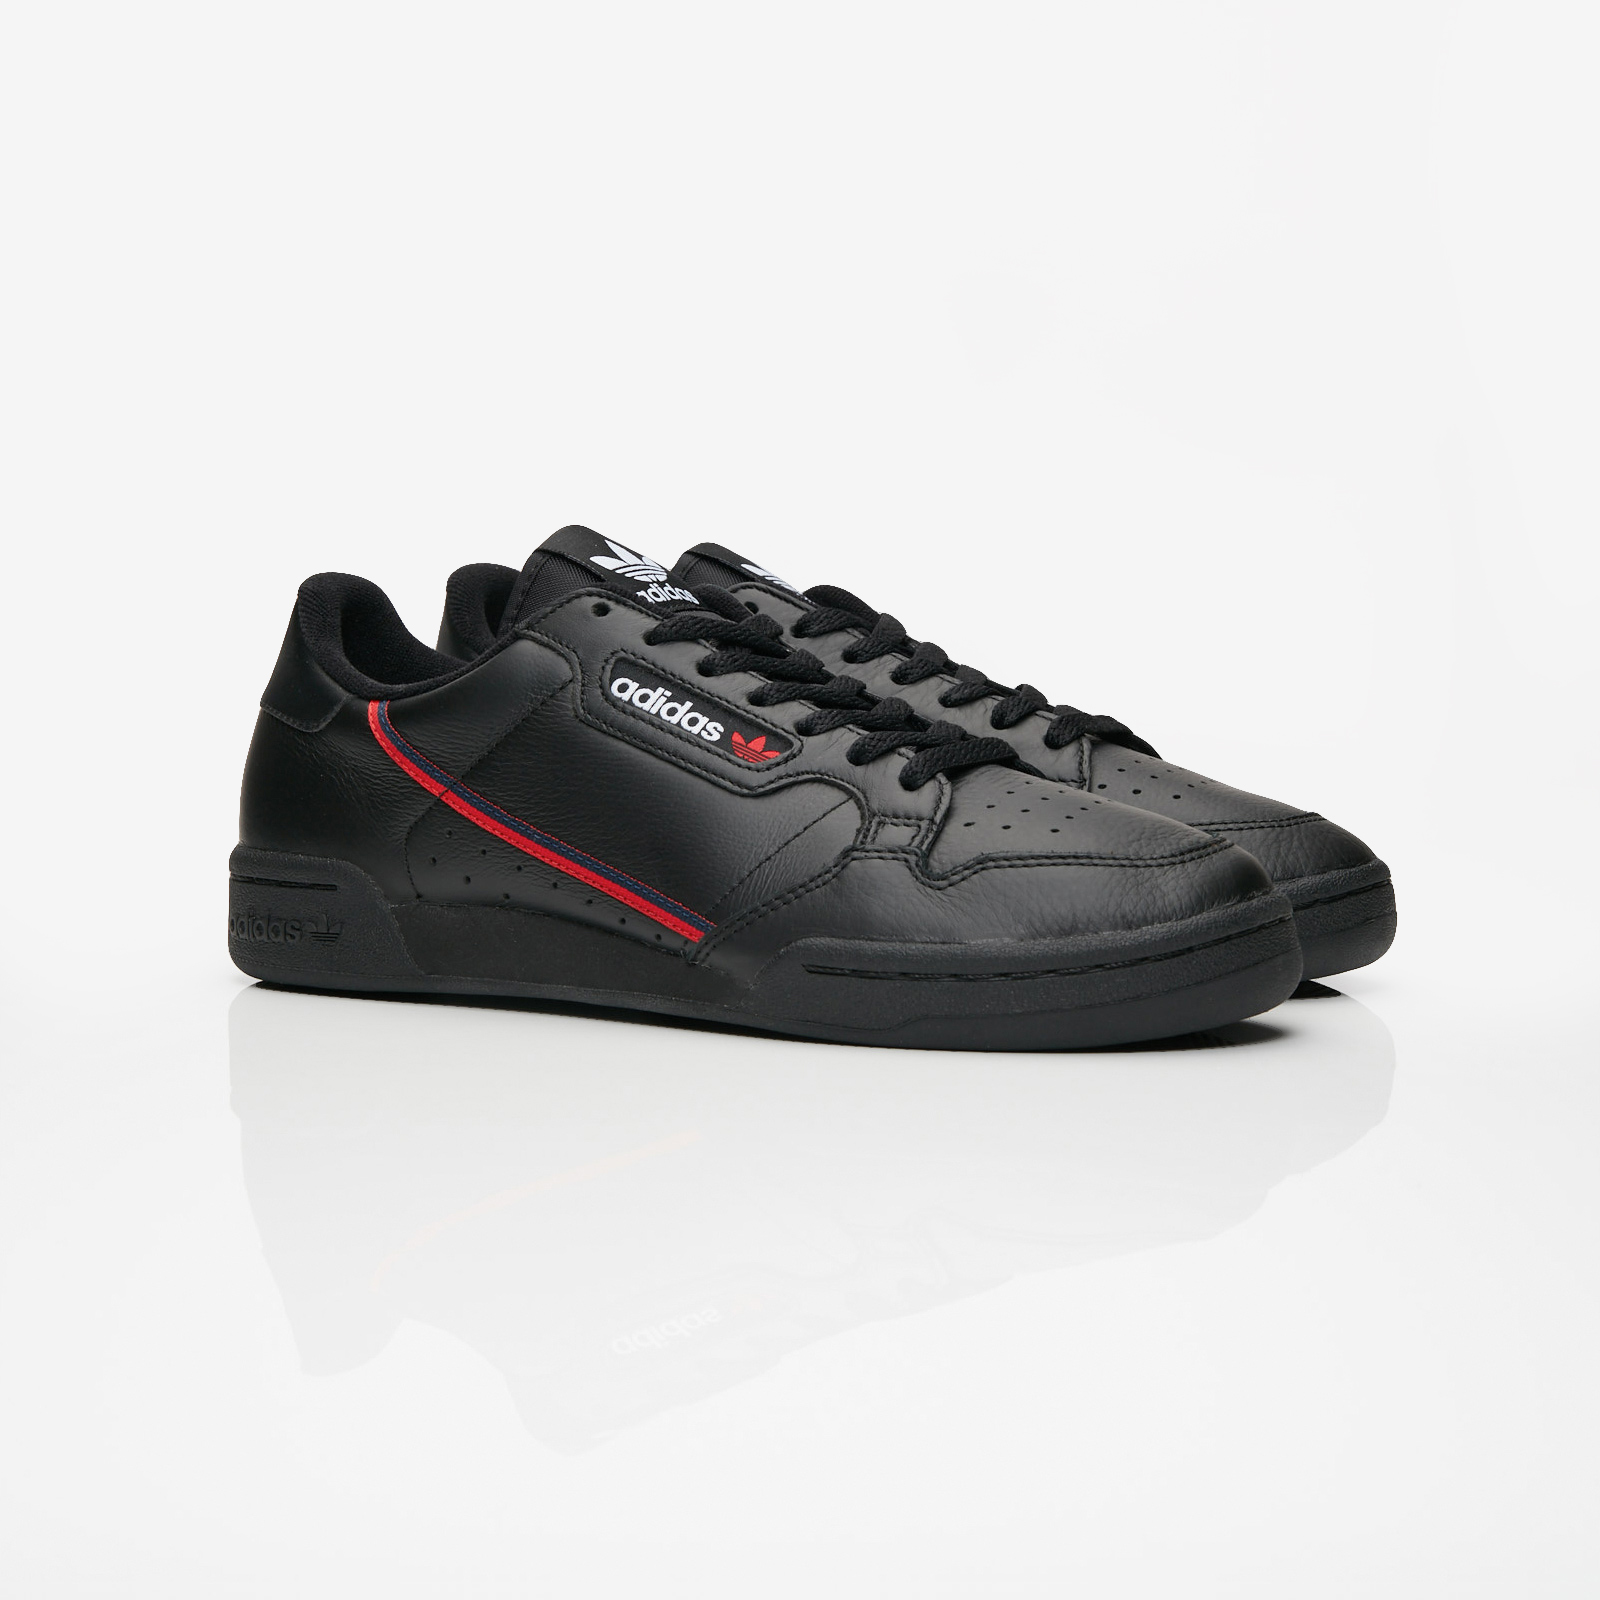 adidas continental 80 femme or